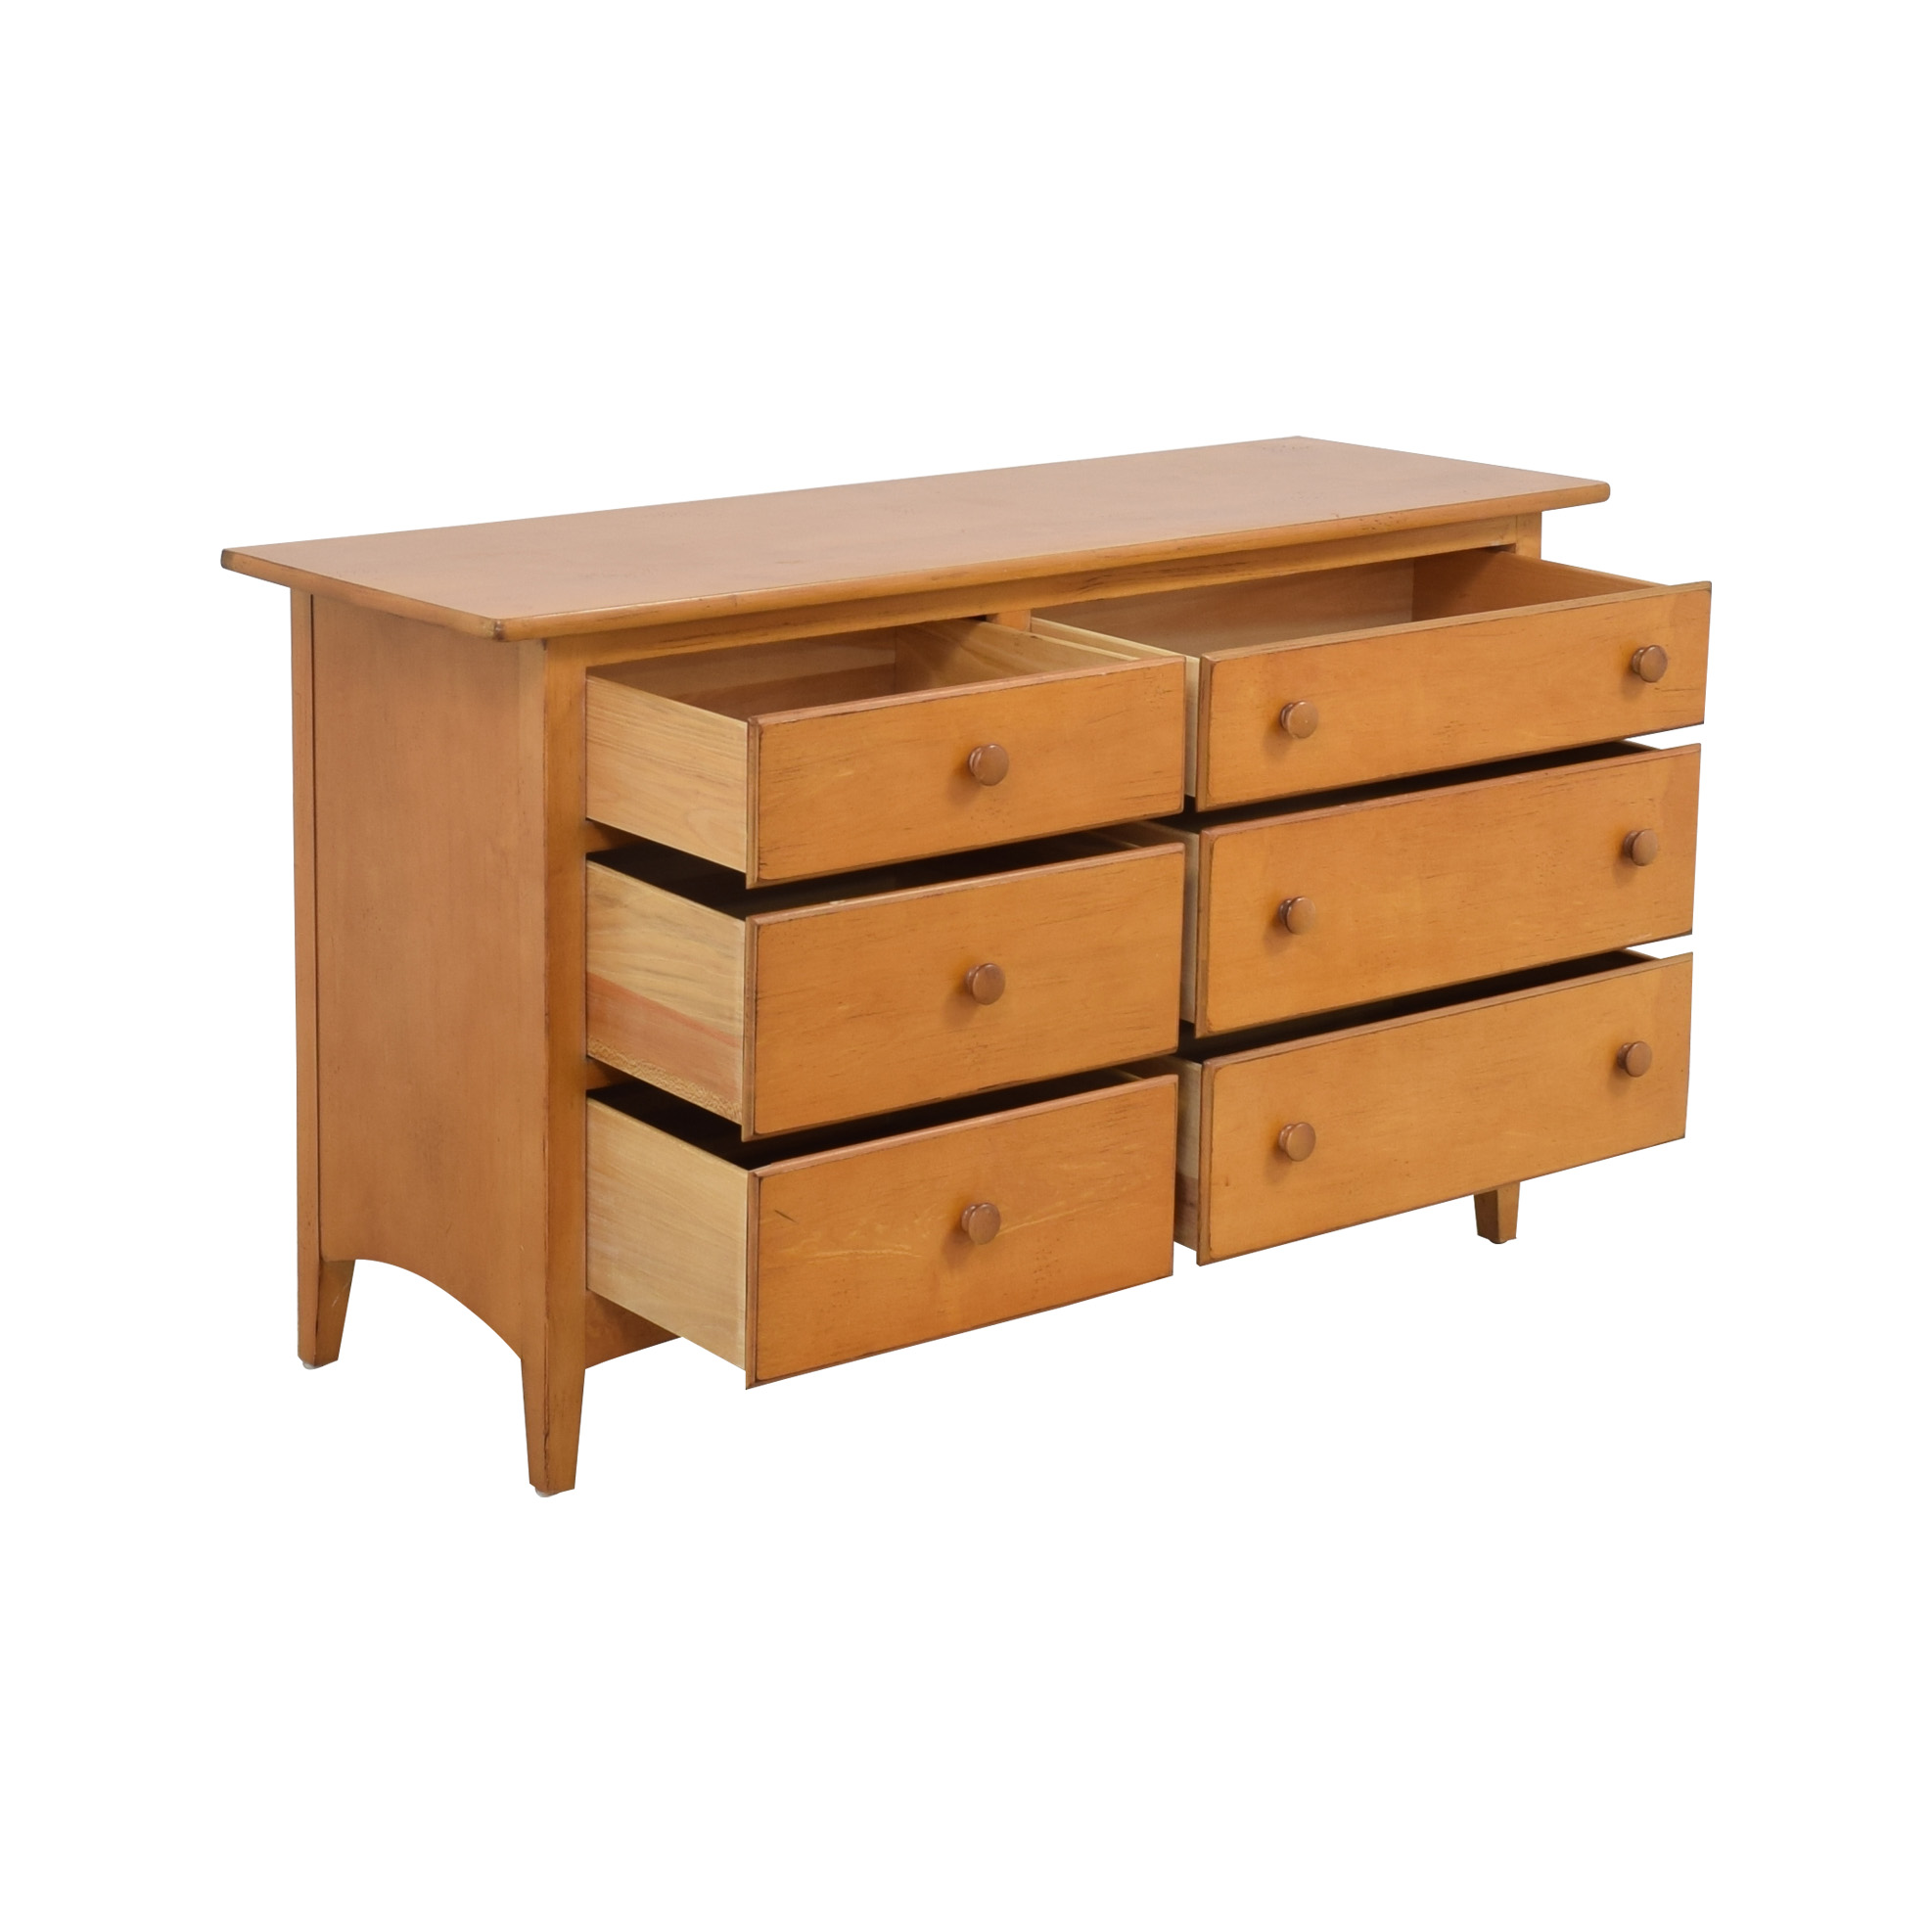 shop Drexel Asymmetrical Six Drawer Dresser Drexel Dressers